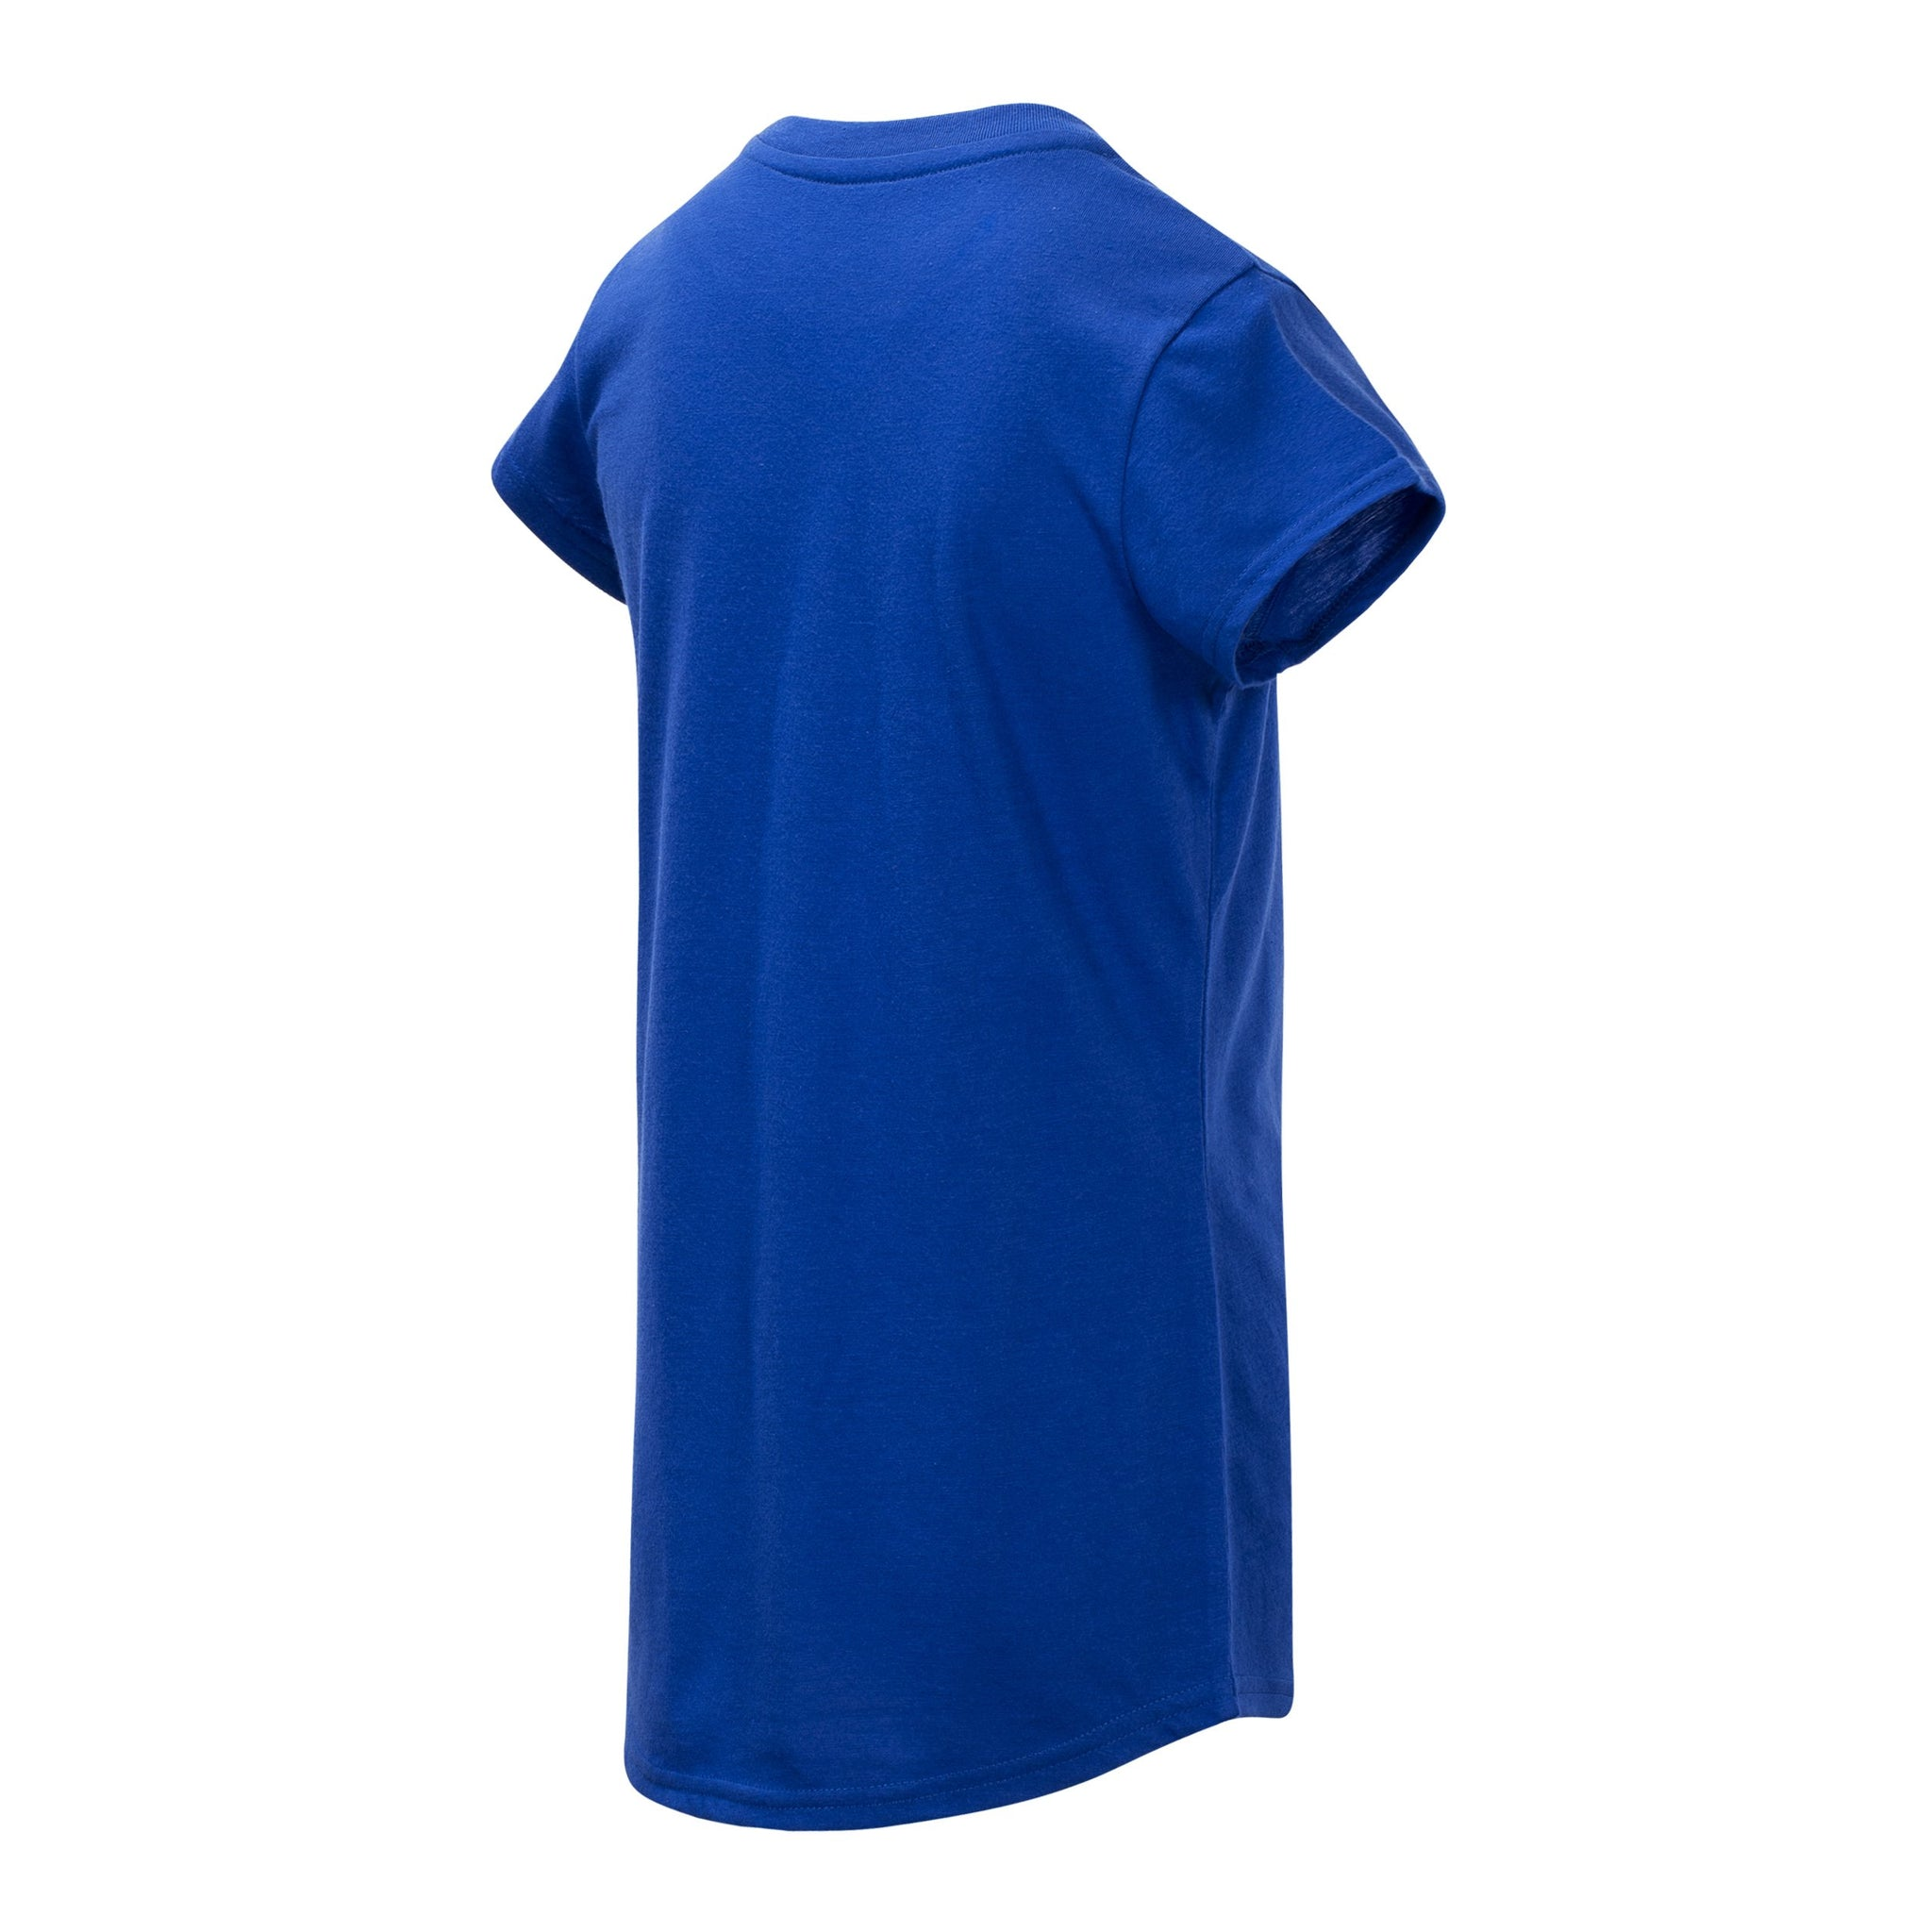 Girls' UV Blue Short Sleeve Graphic Tee